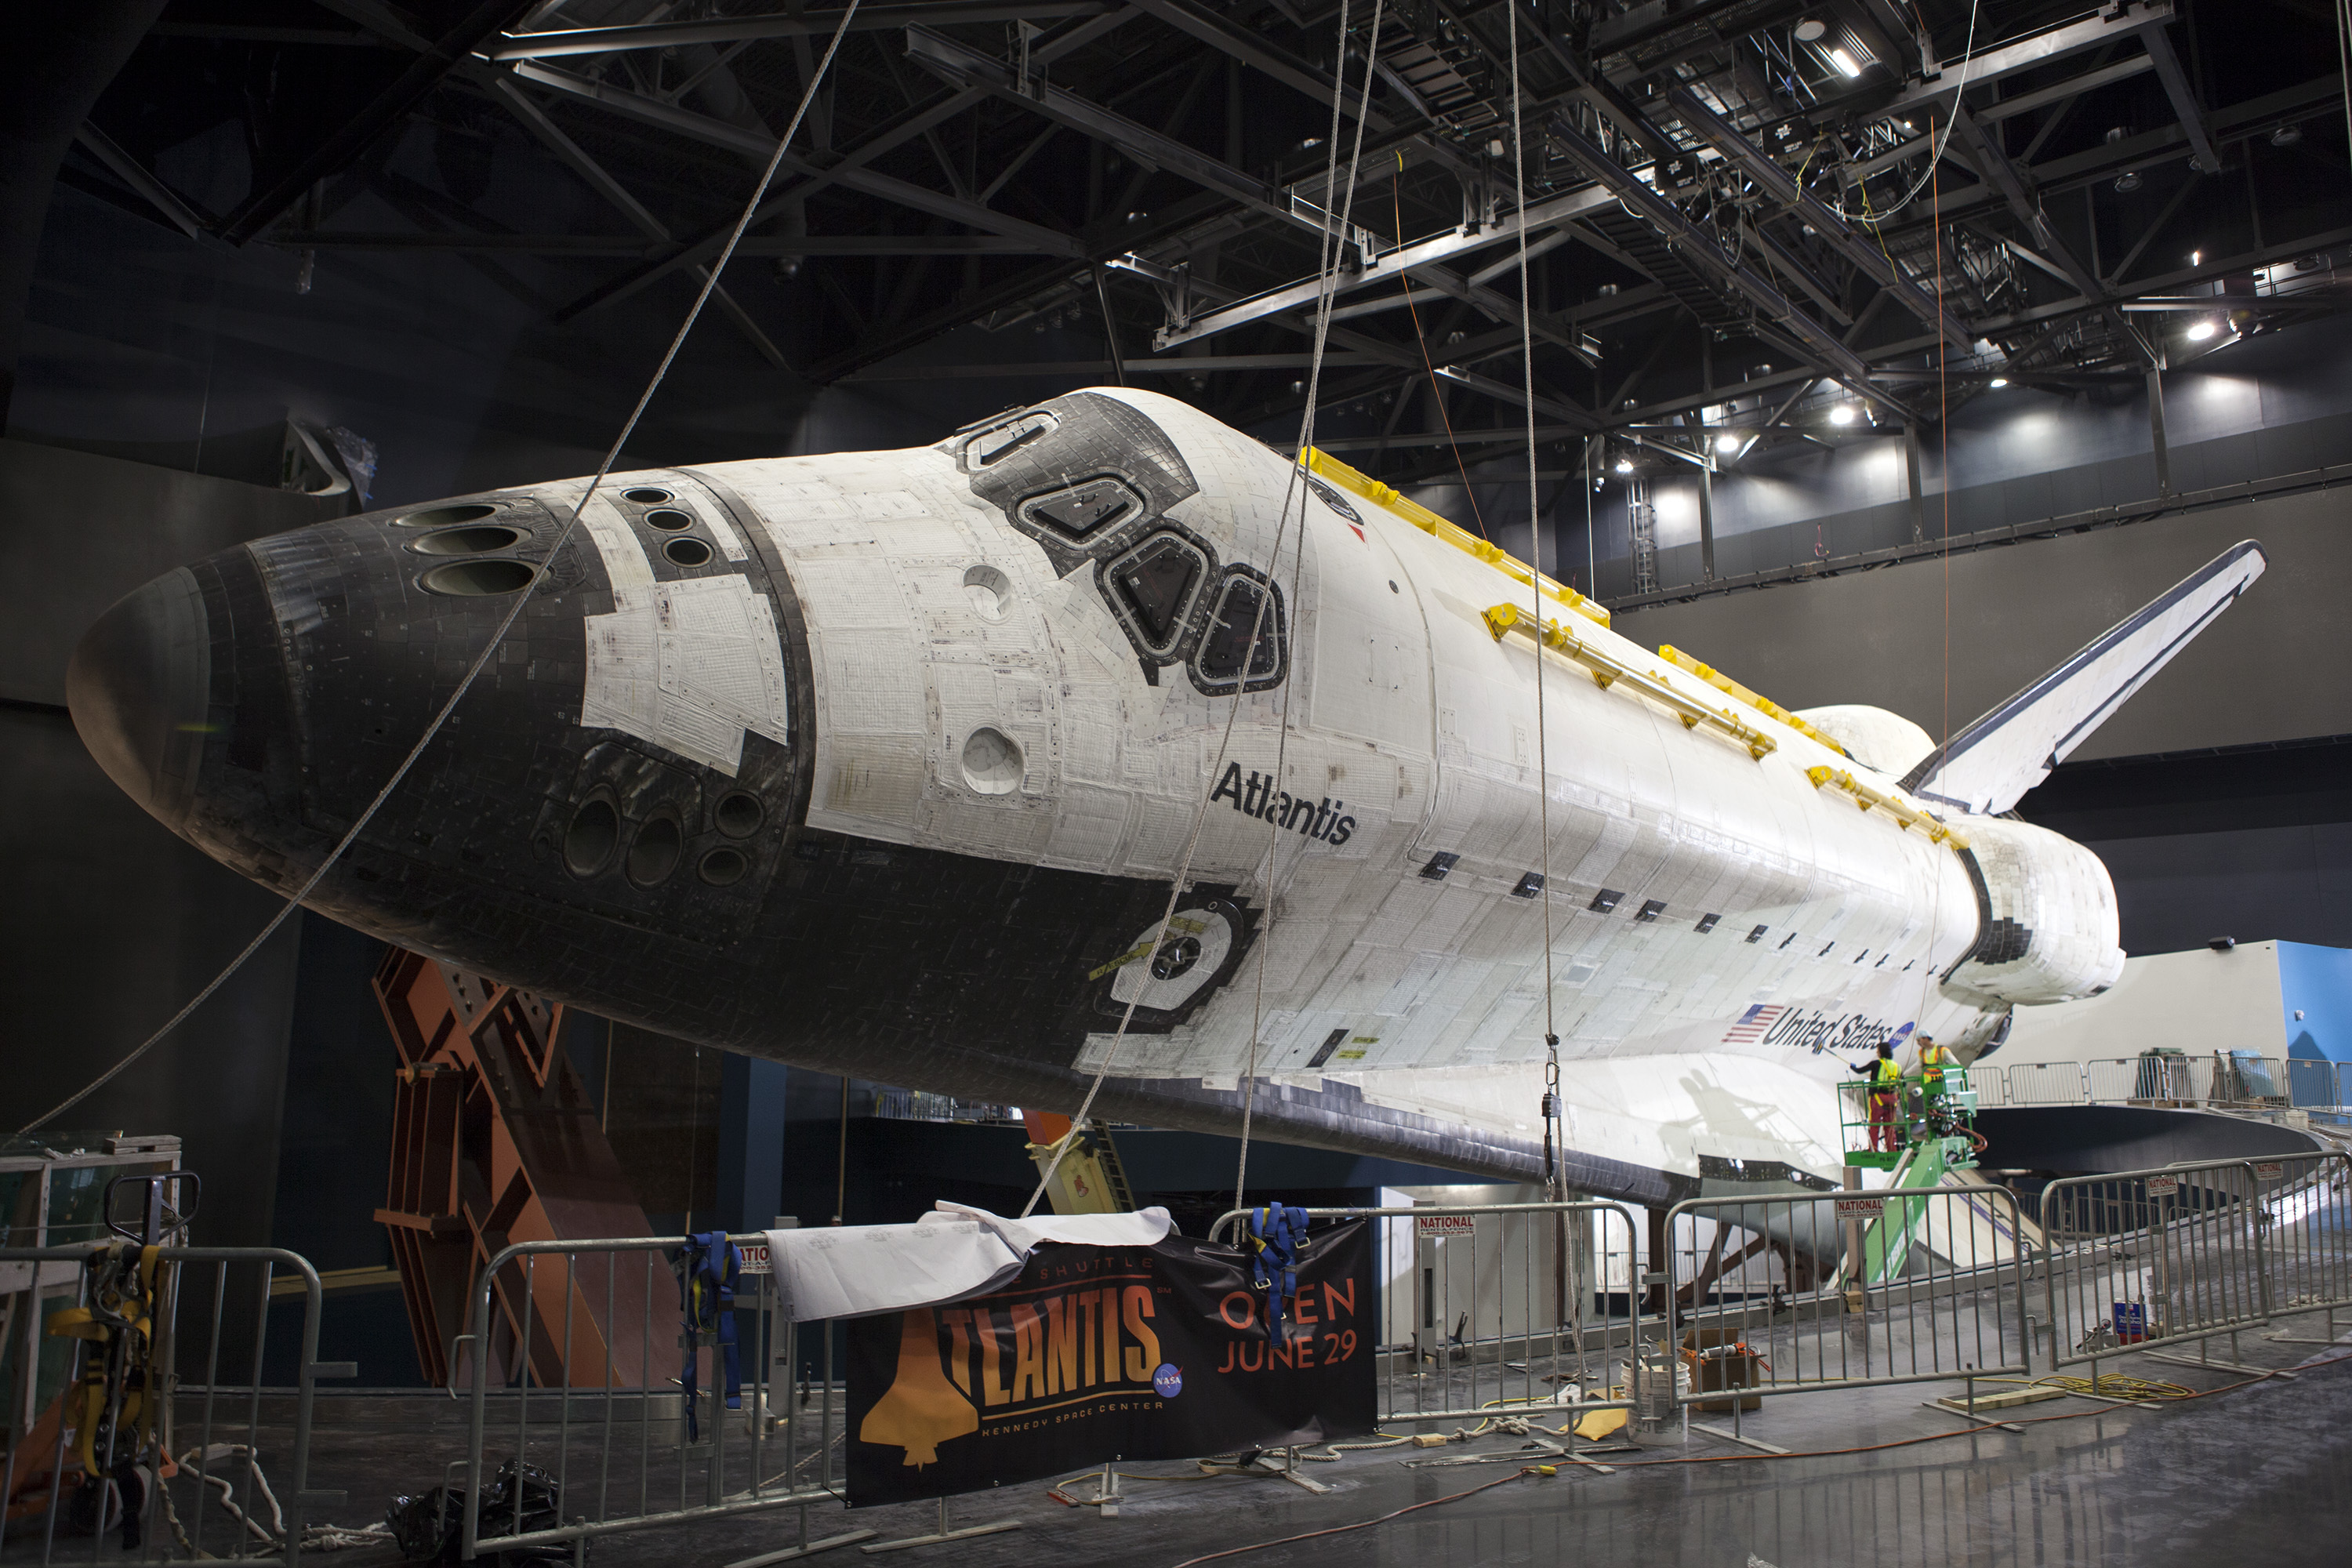 space shuttle atlantis accomplishments - photo #30